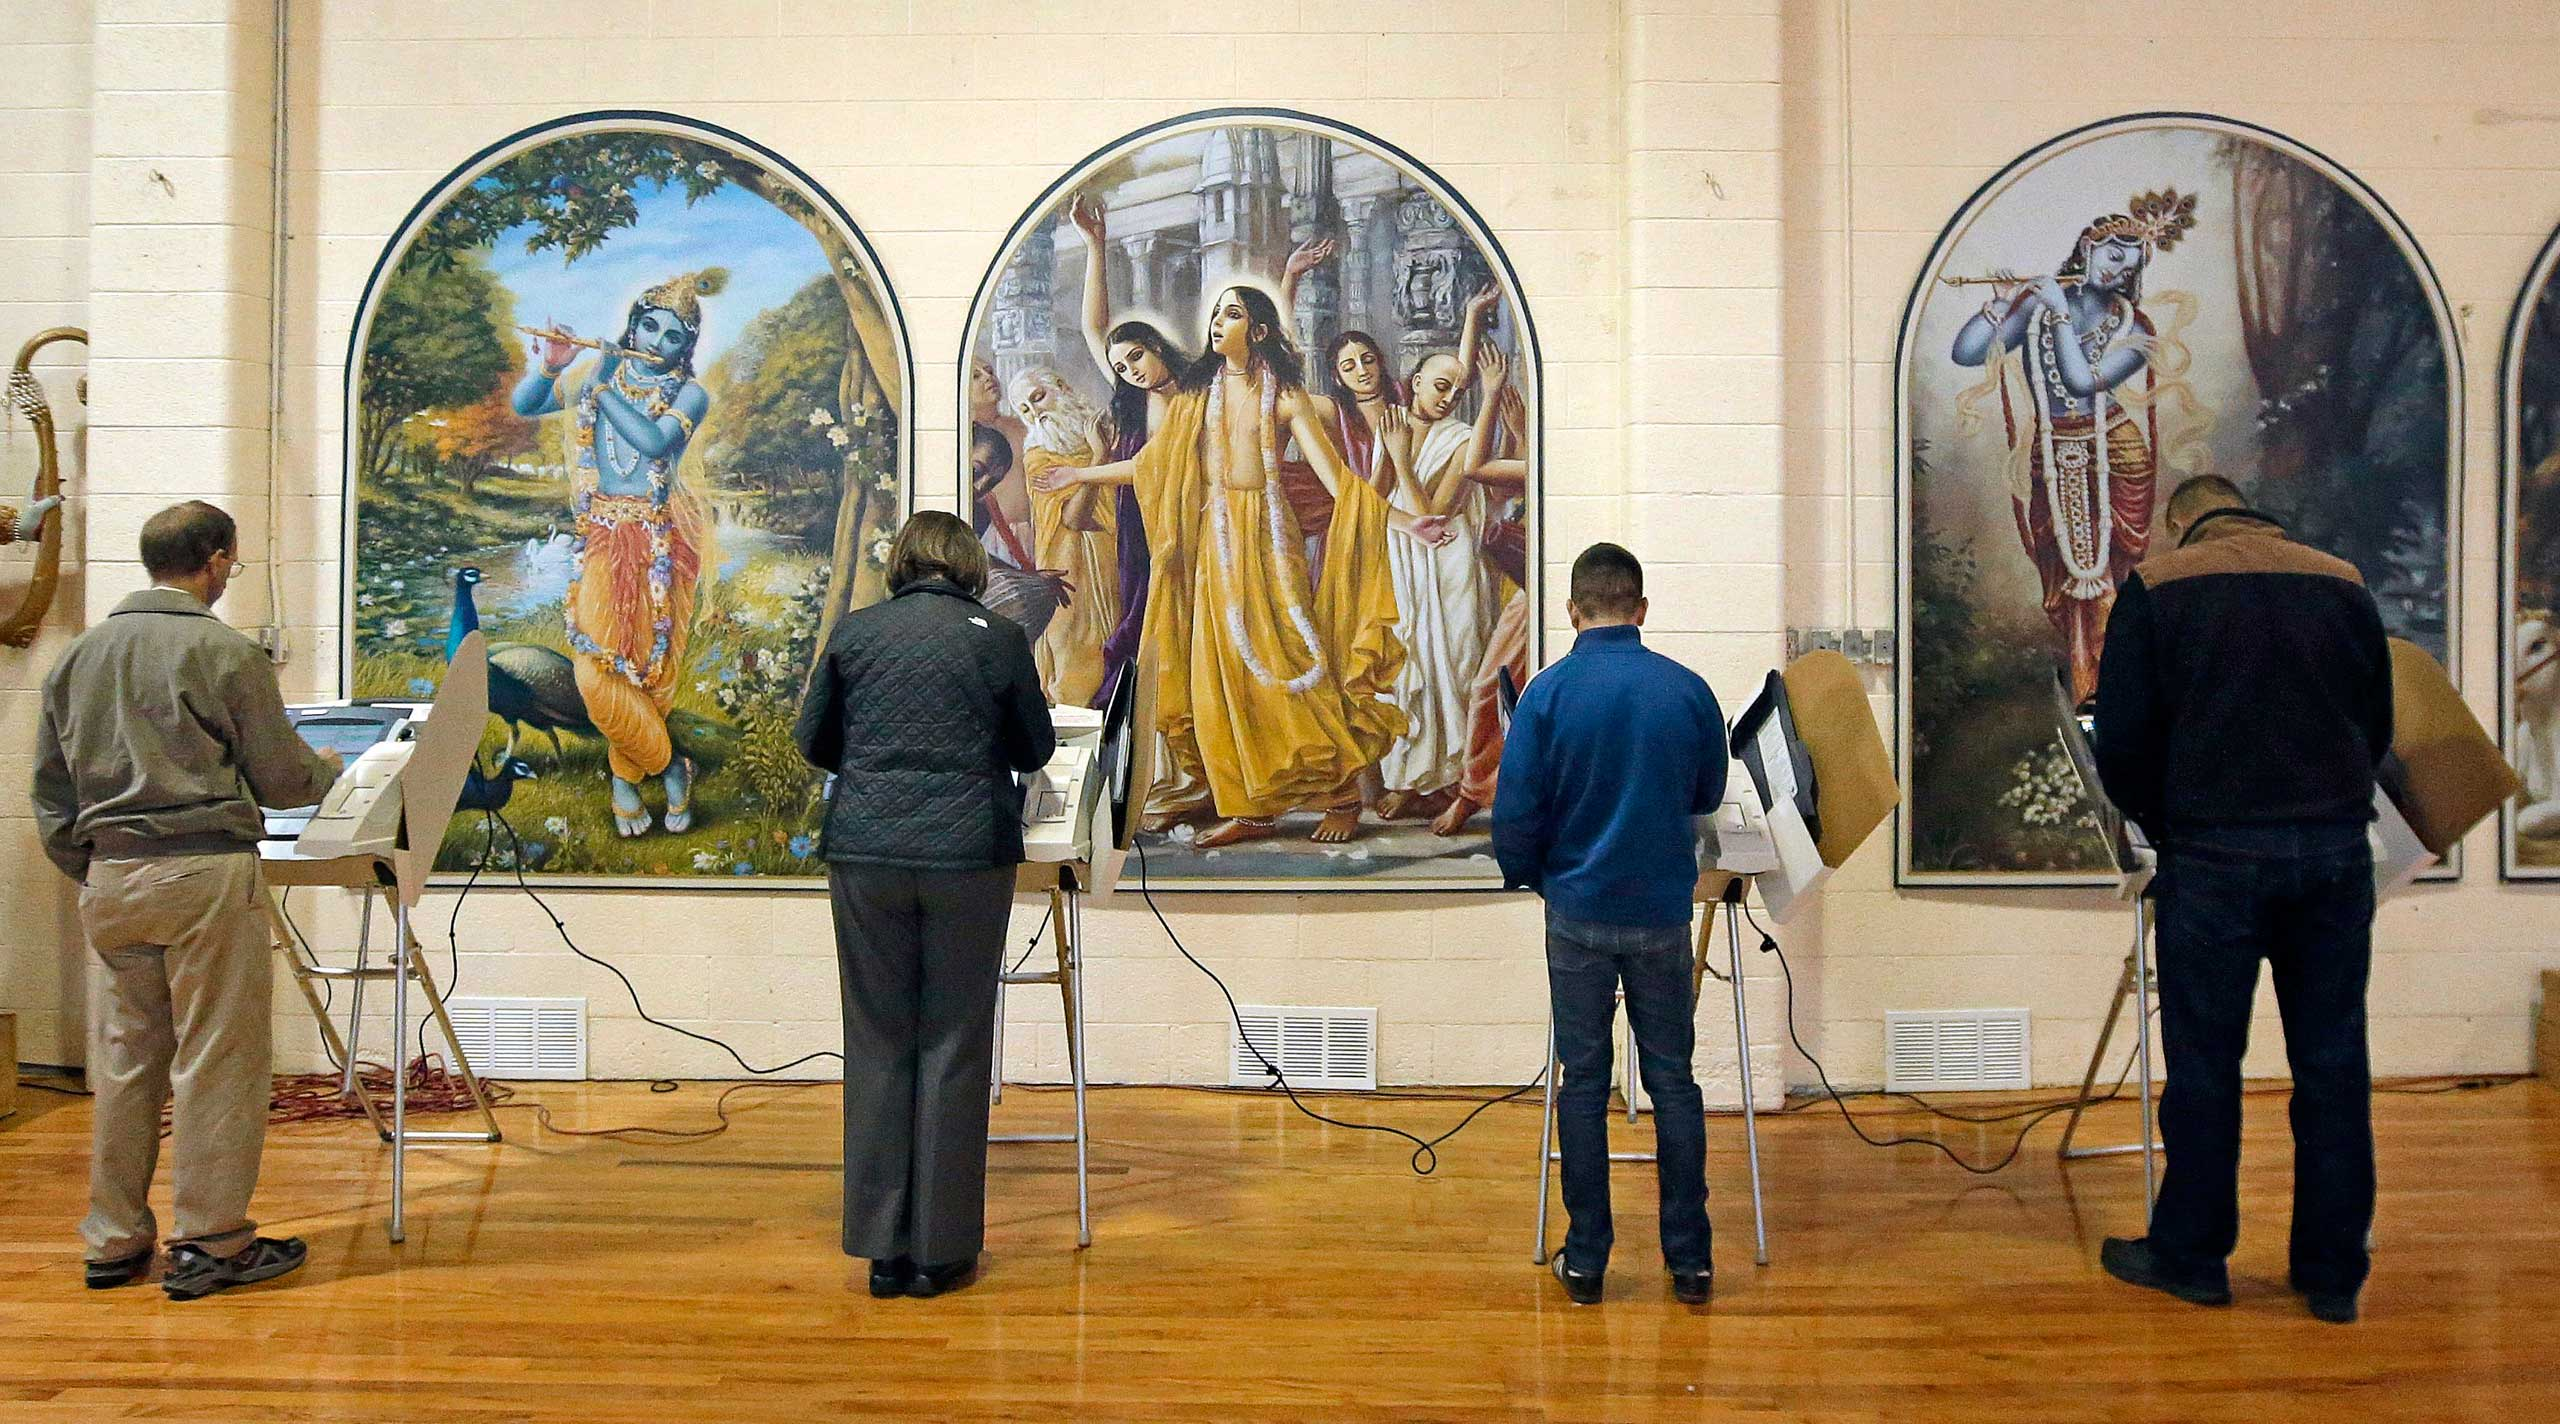 People vote at the polling place in Krishna Temple in Salt Lake City on Nov. 4, 2014.